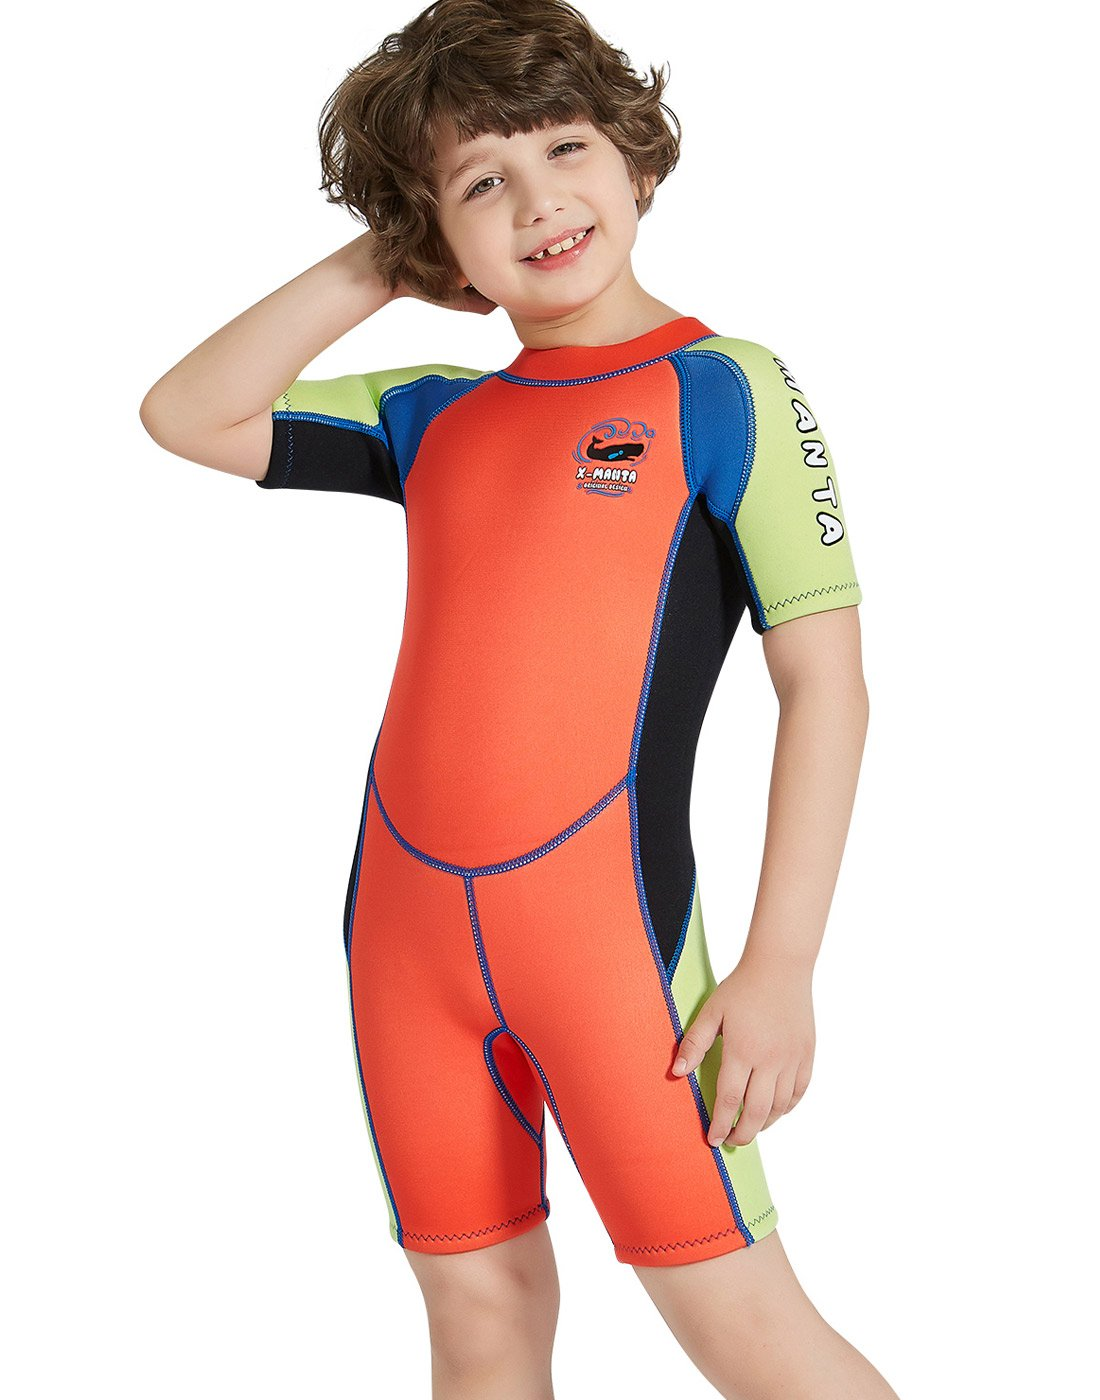 DIVE & SAIL Boys Short Sleeve Wetsuit 2.5mm Thermal Warm Shorty Suit Colorful Swimsuit Sun Protection Swimwear Orange S by DIVE & SAIL